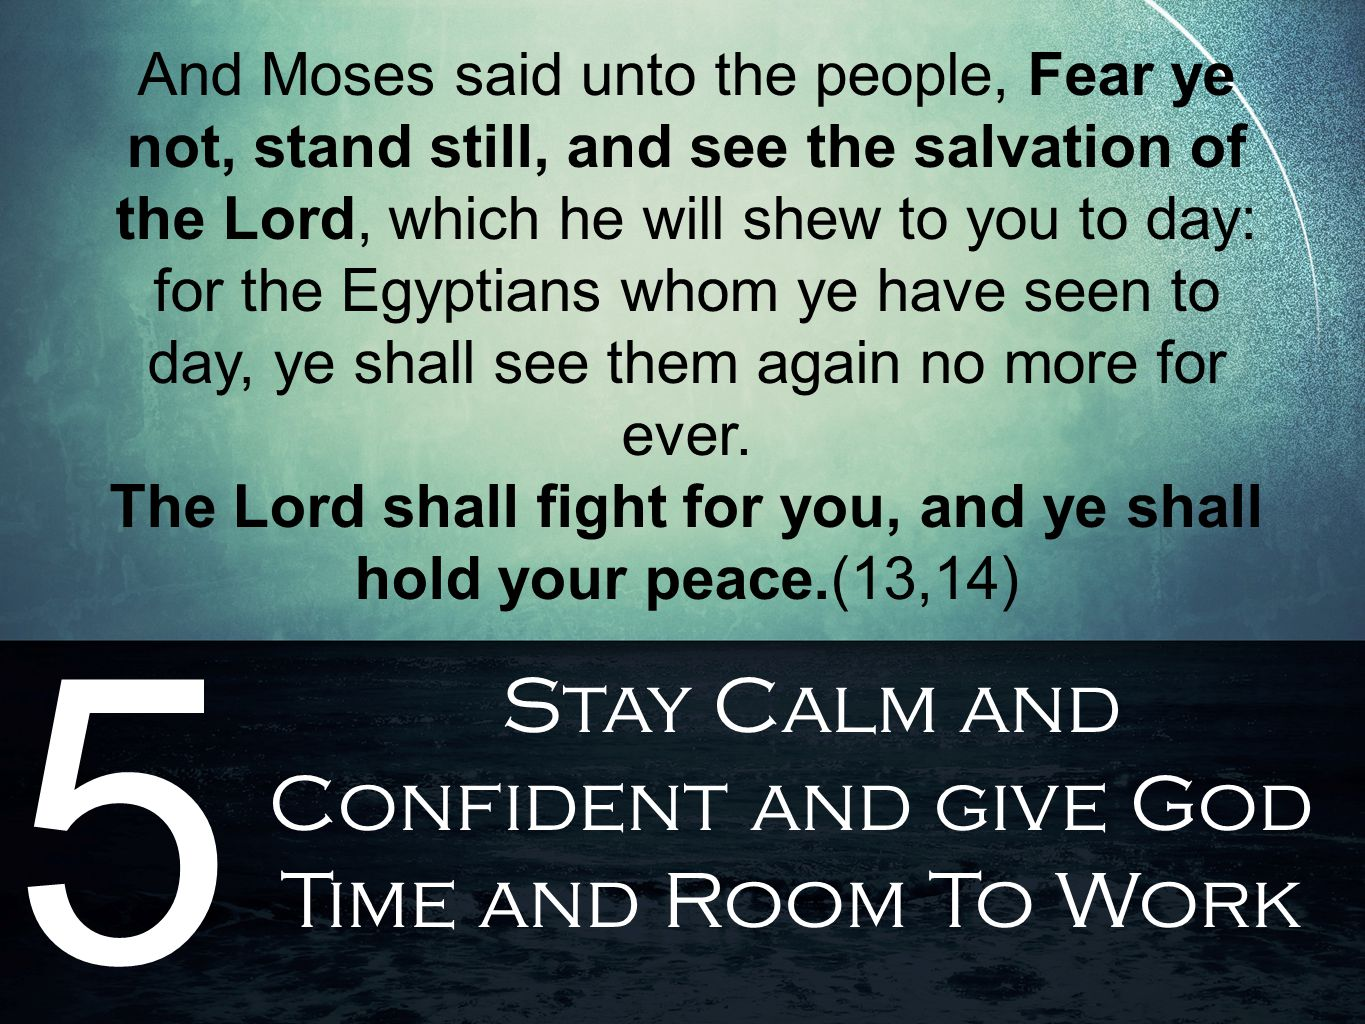 Stay Calm and Confident and give God Time and Room To Work 5 And Moses said unto the people, Fear ye not, stand still, and see the salvation of the Lo